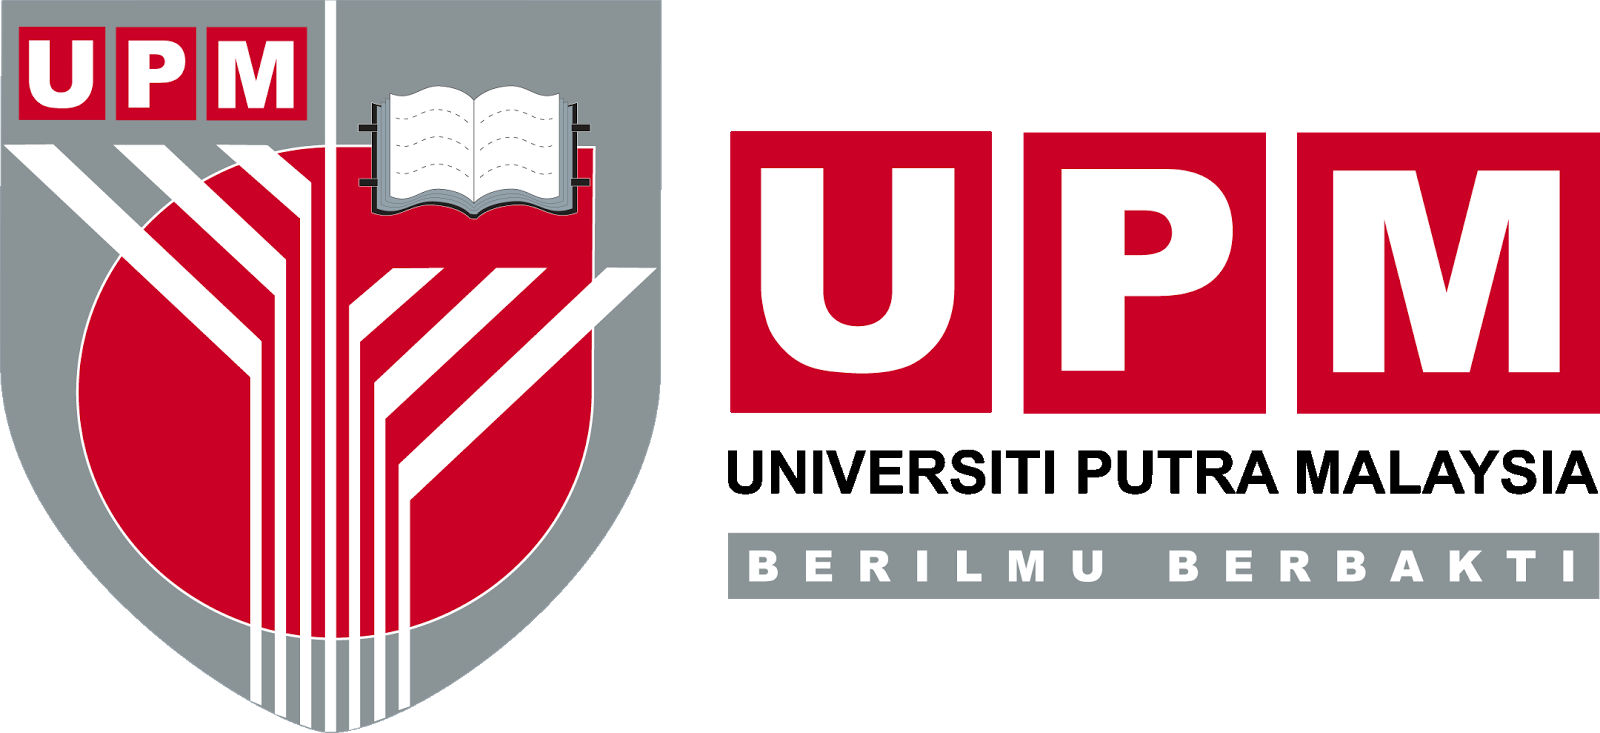 Love Upm Logo